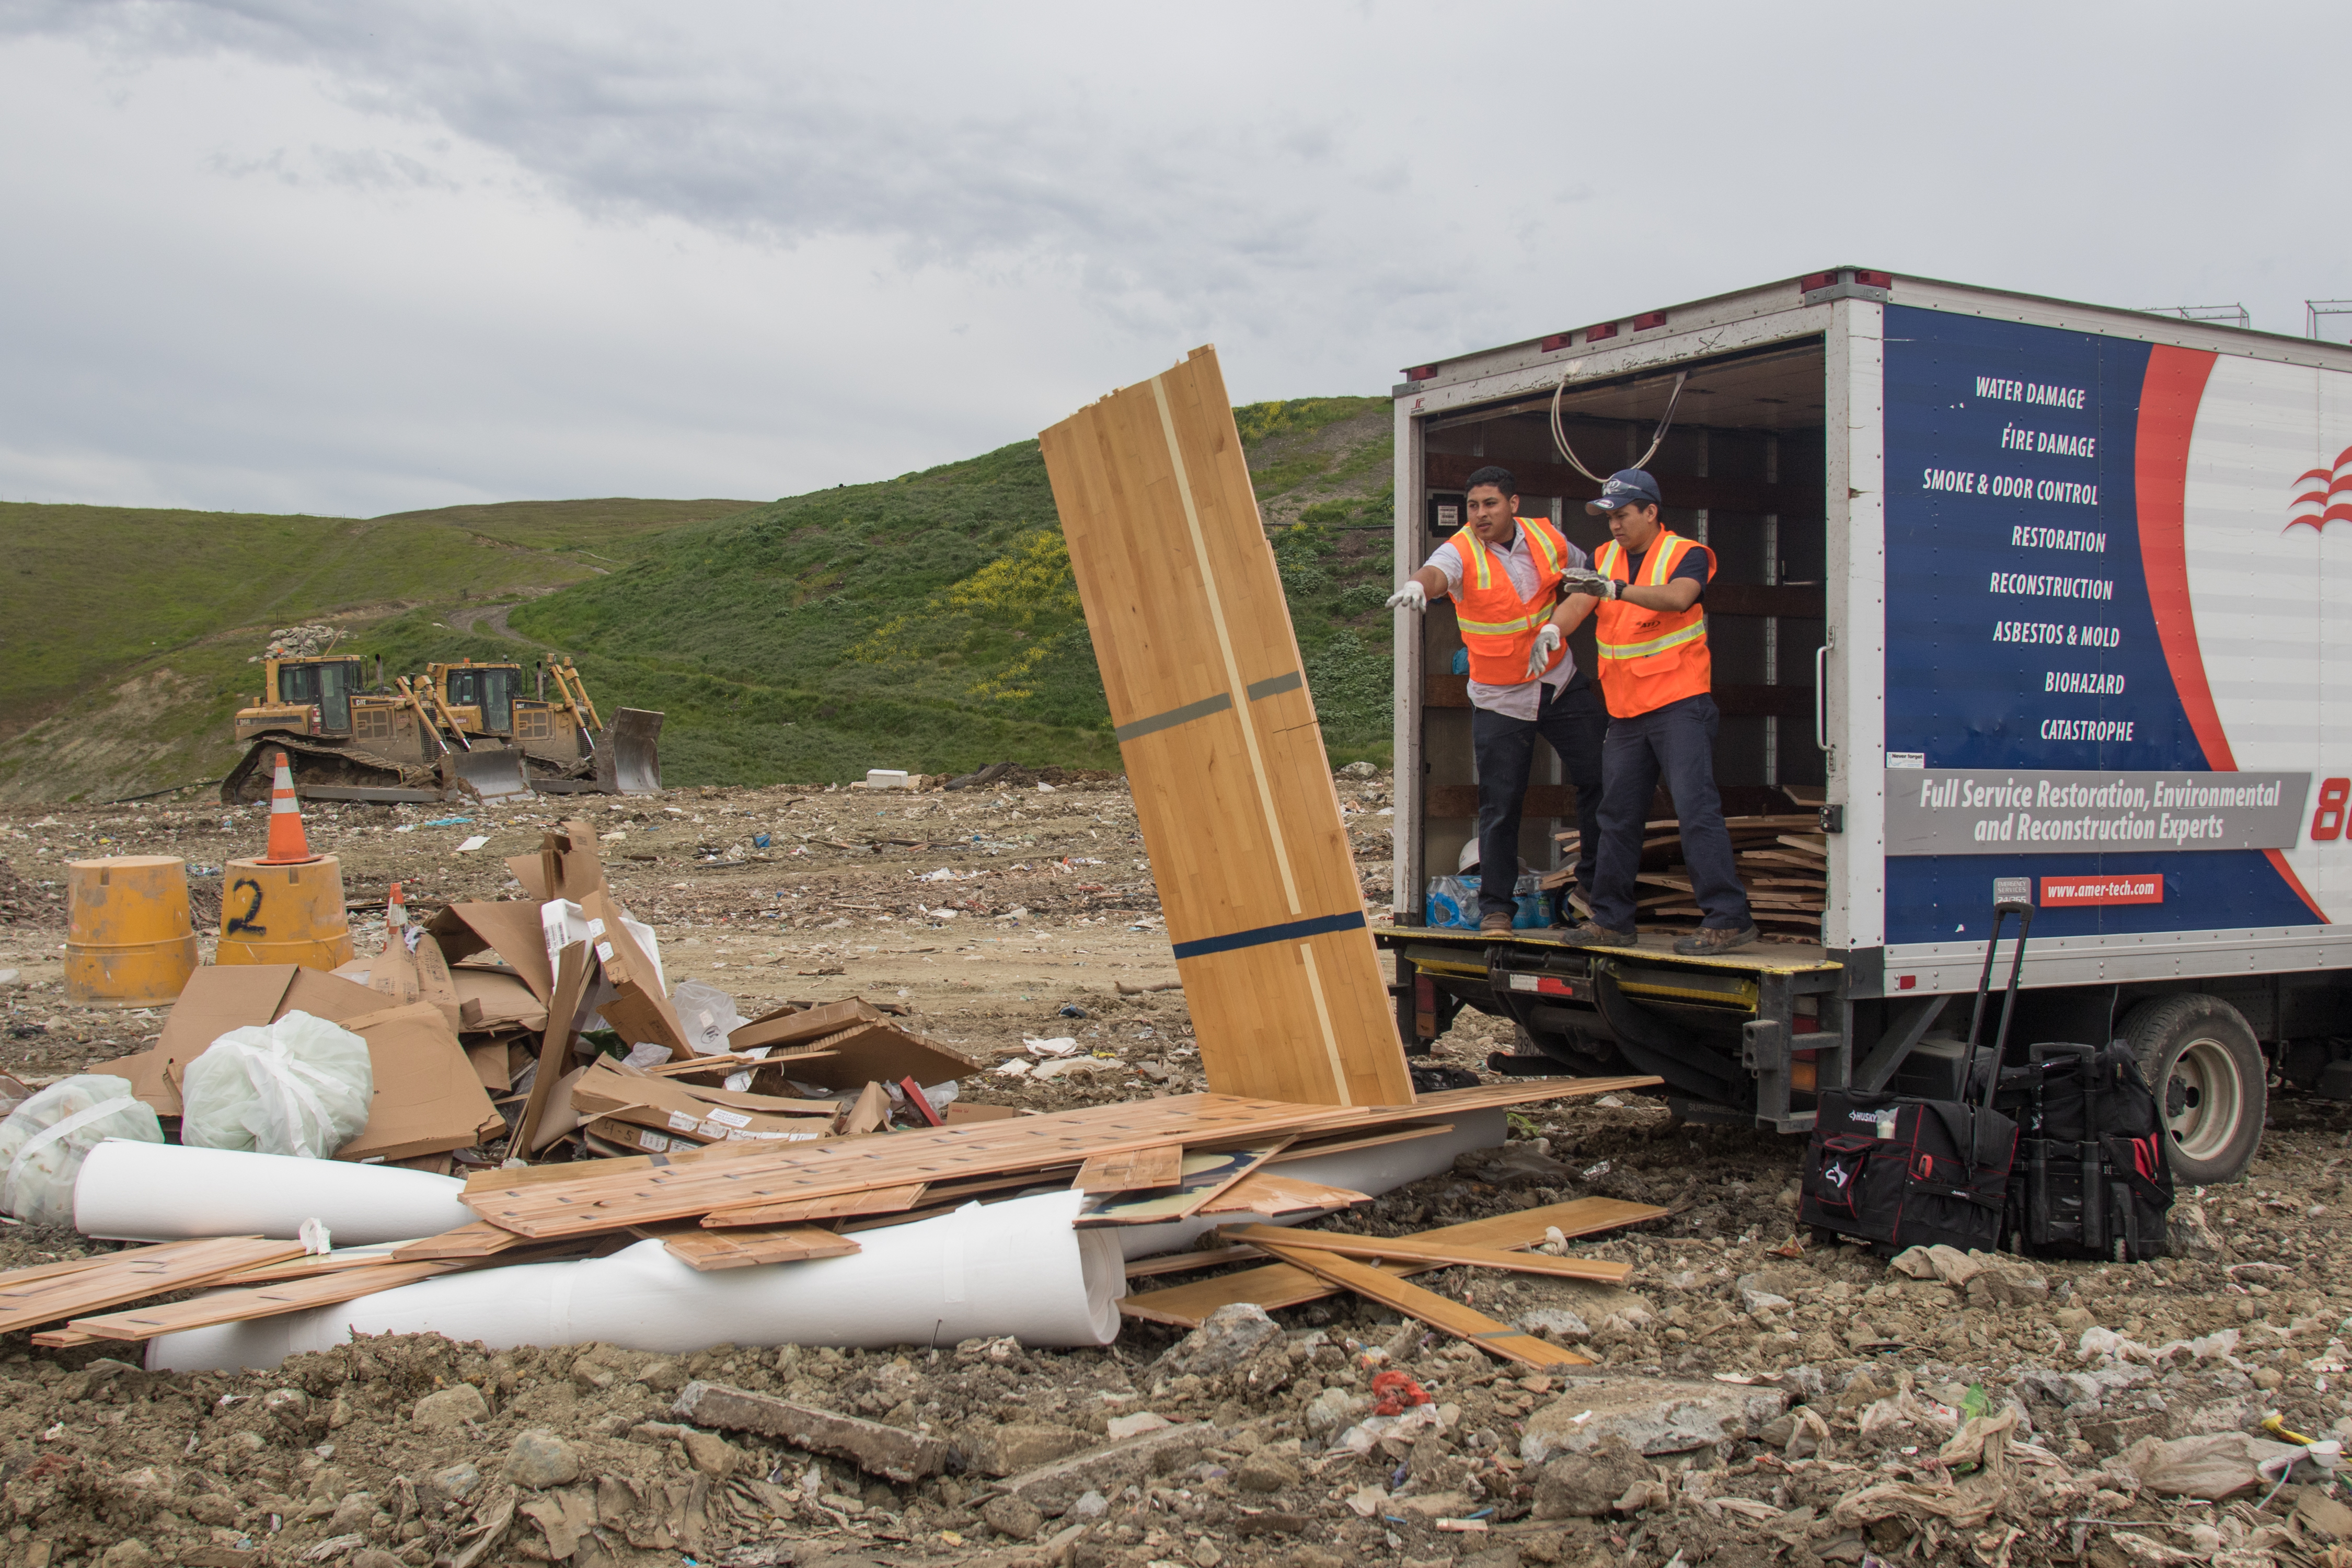 Demolition workers toss the remains of a middle school gymnasium wood floor into the landfill. The wood is treated with laminate and therefore unable to be otherwise recycled.